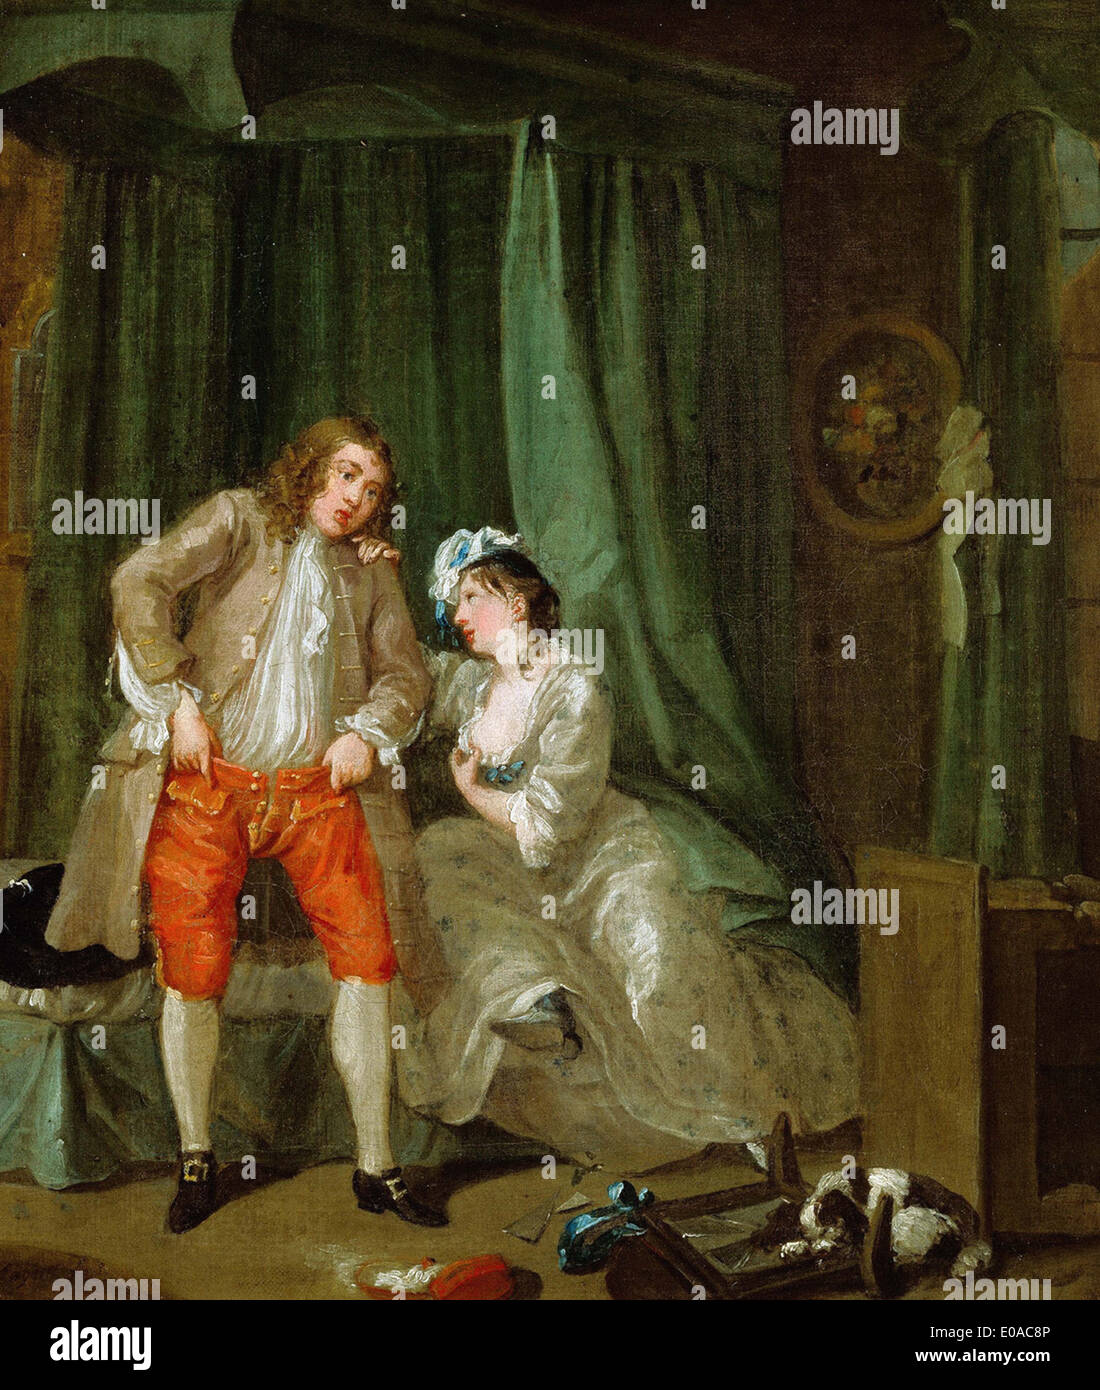 William Hogarth nach Stockbild